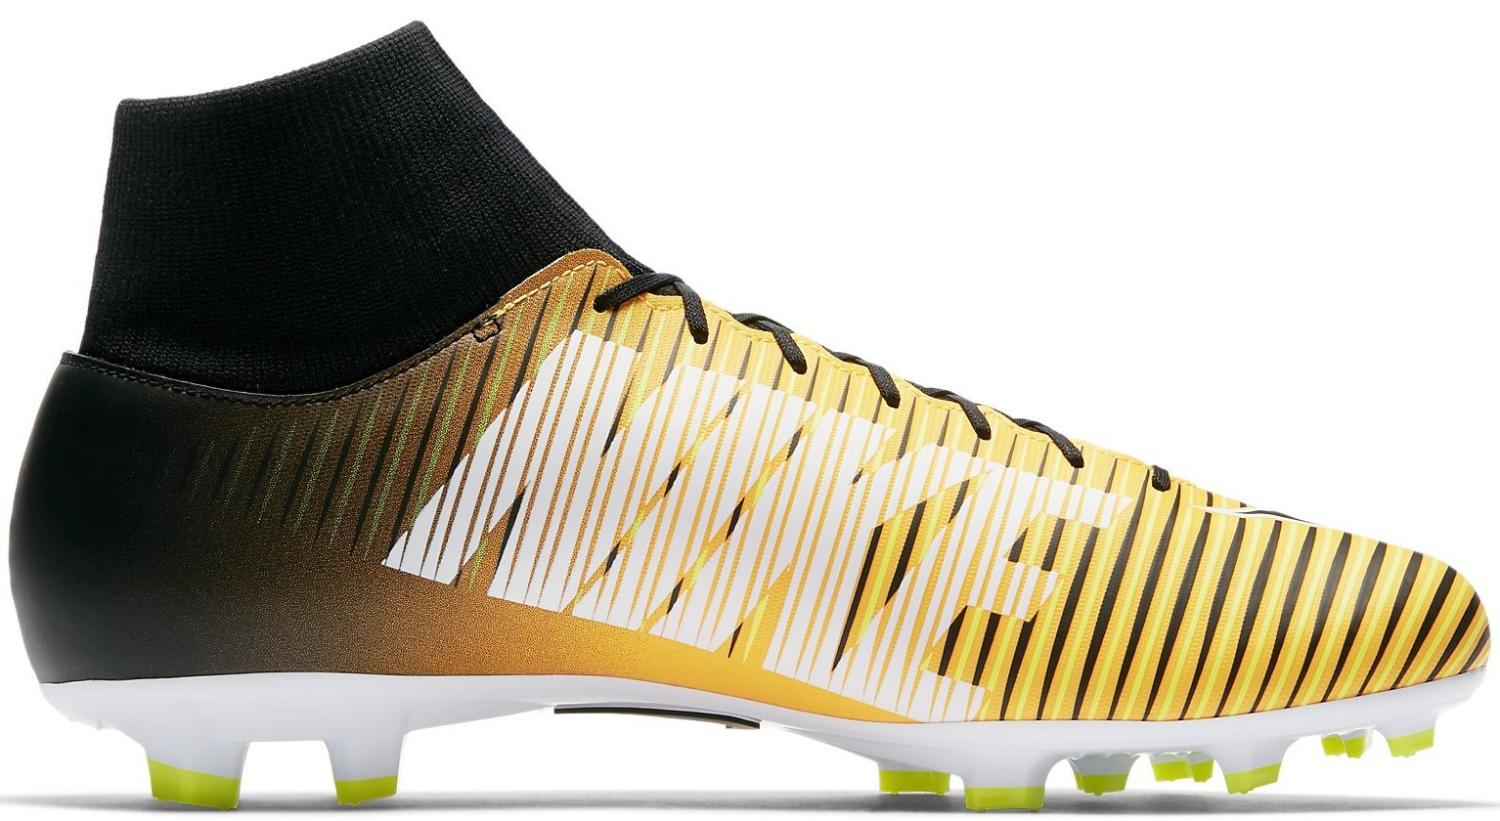 lowest price 58747 39717 kopacky nike mercurial kotnikove AIR JORDAN ...